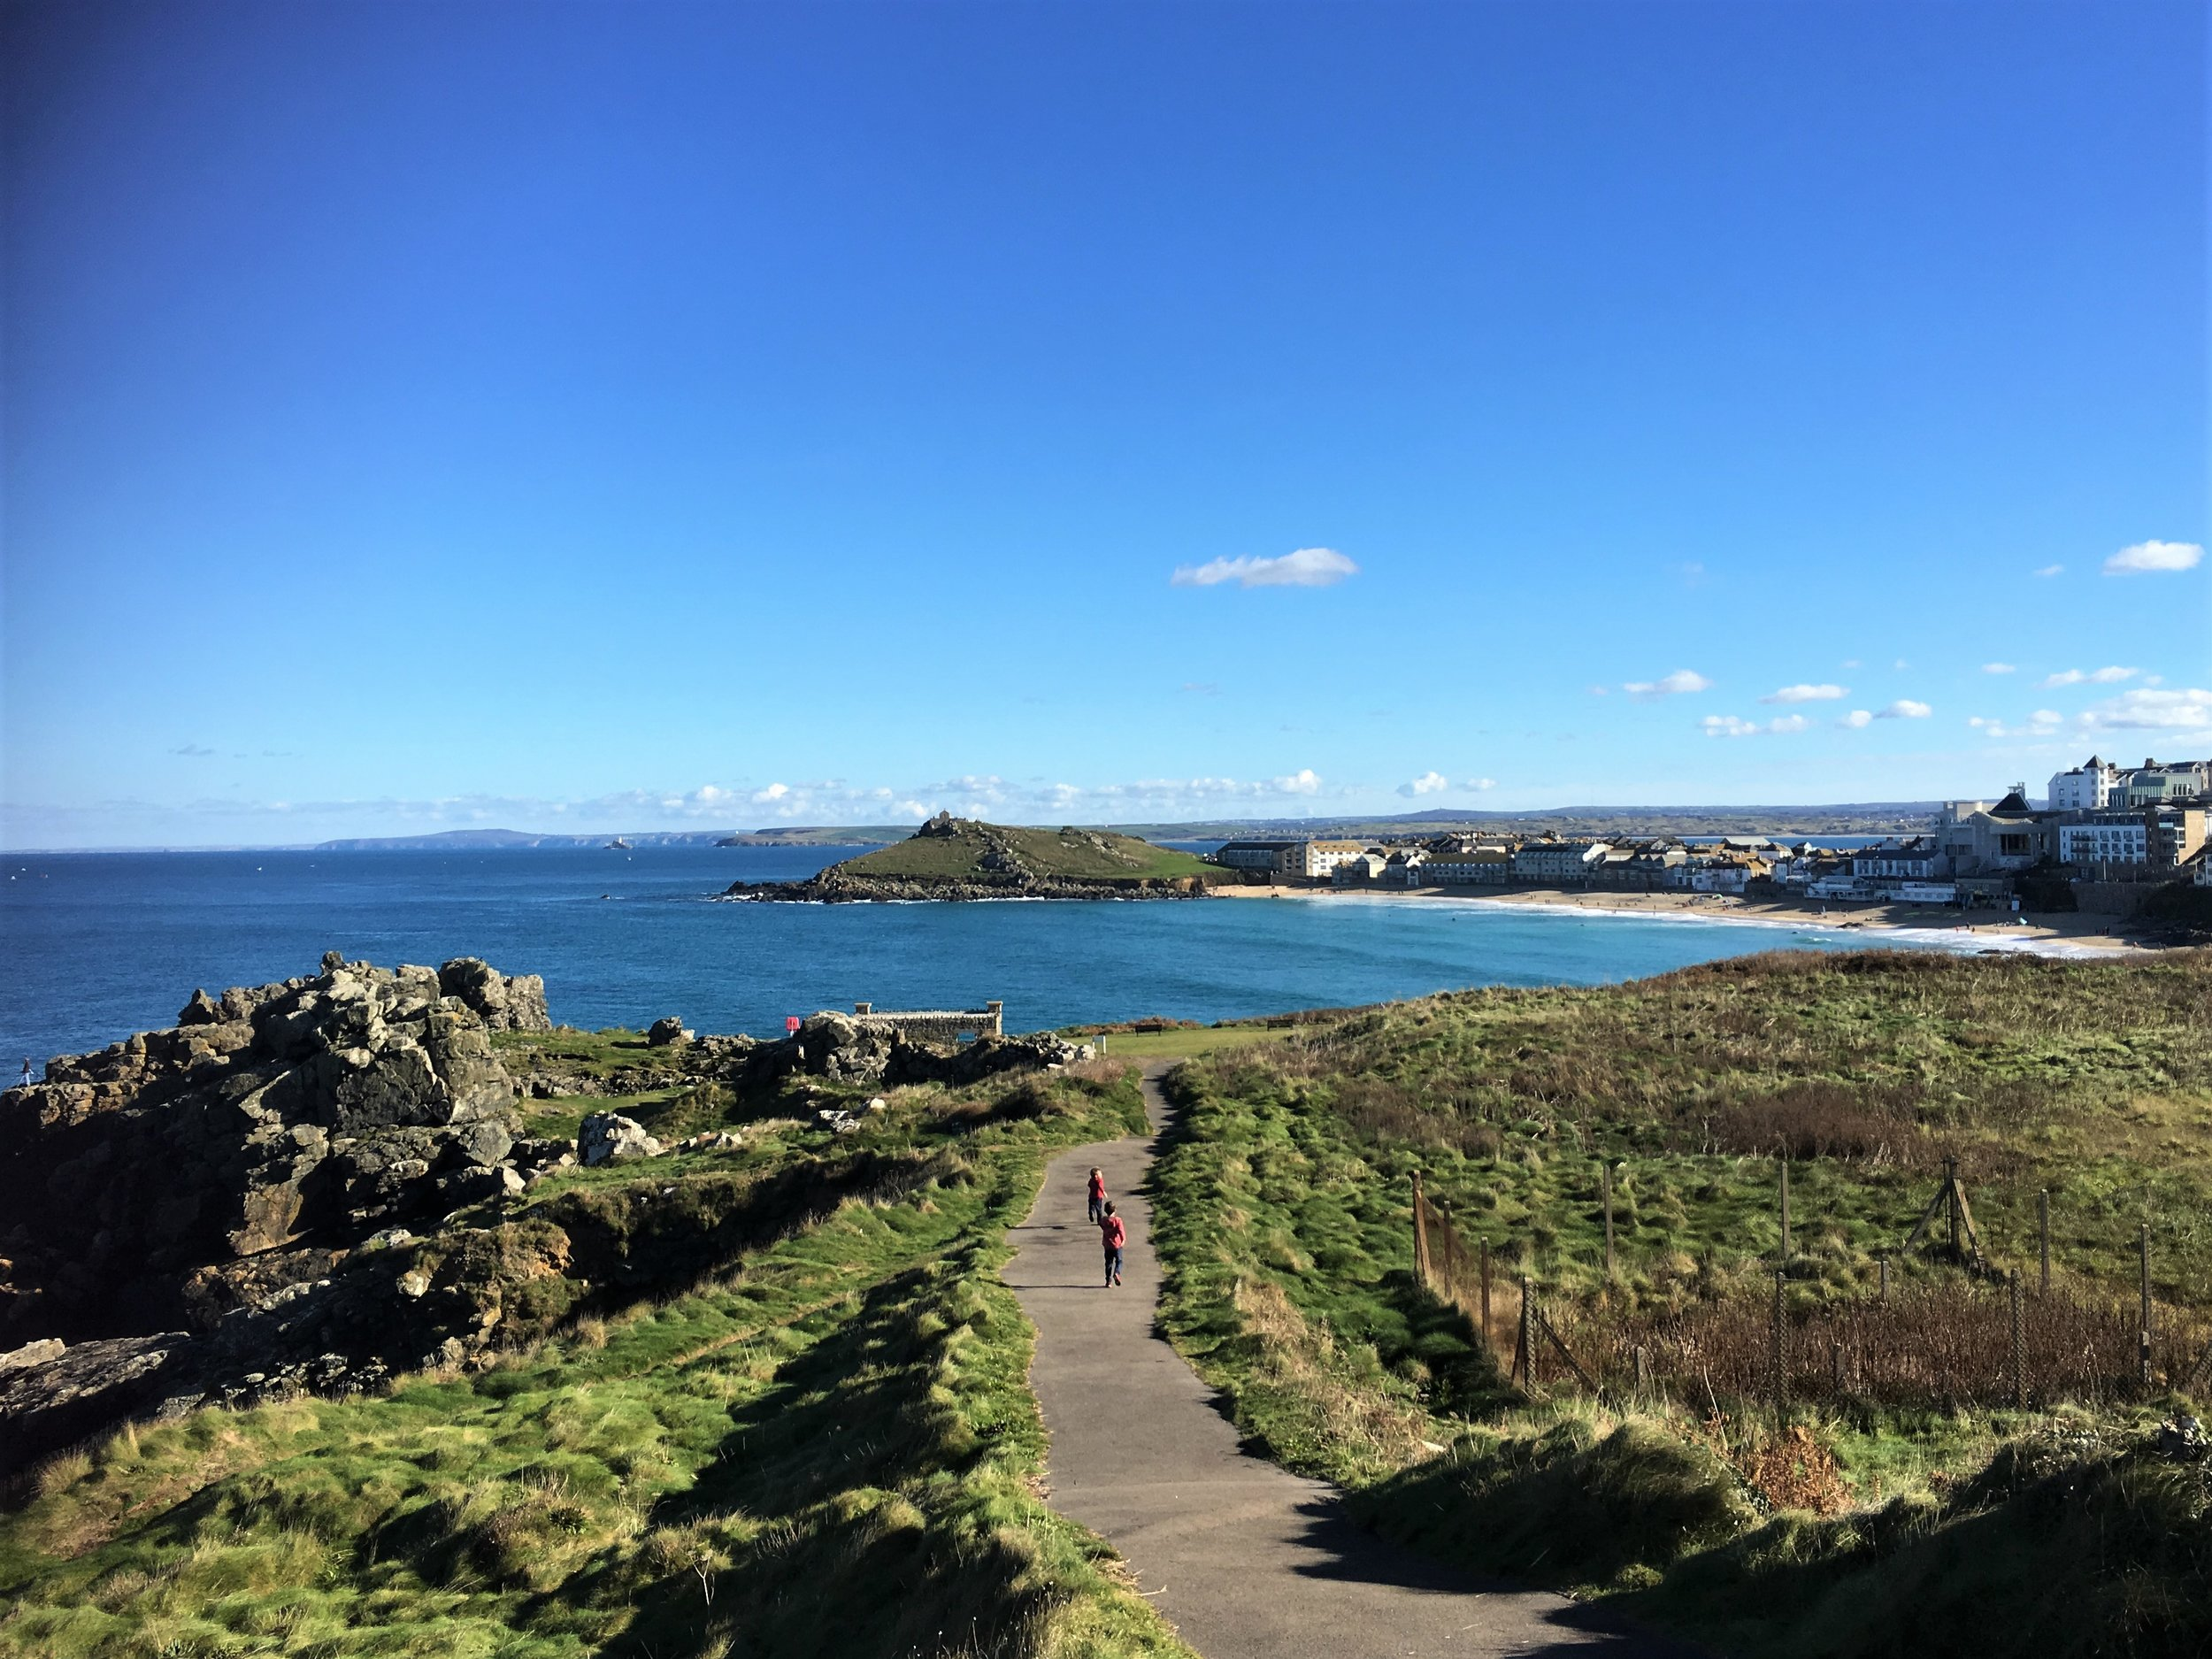 Running down to St Ives beach